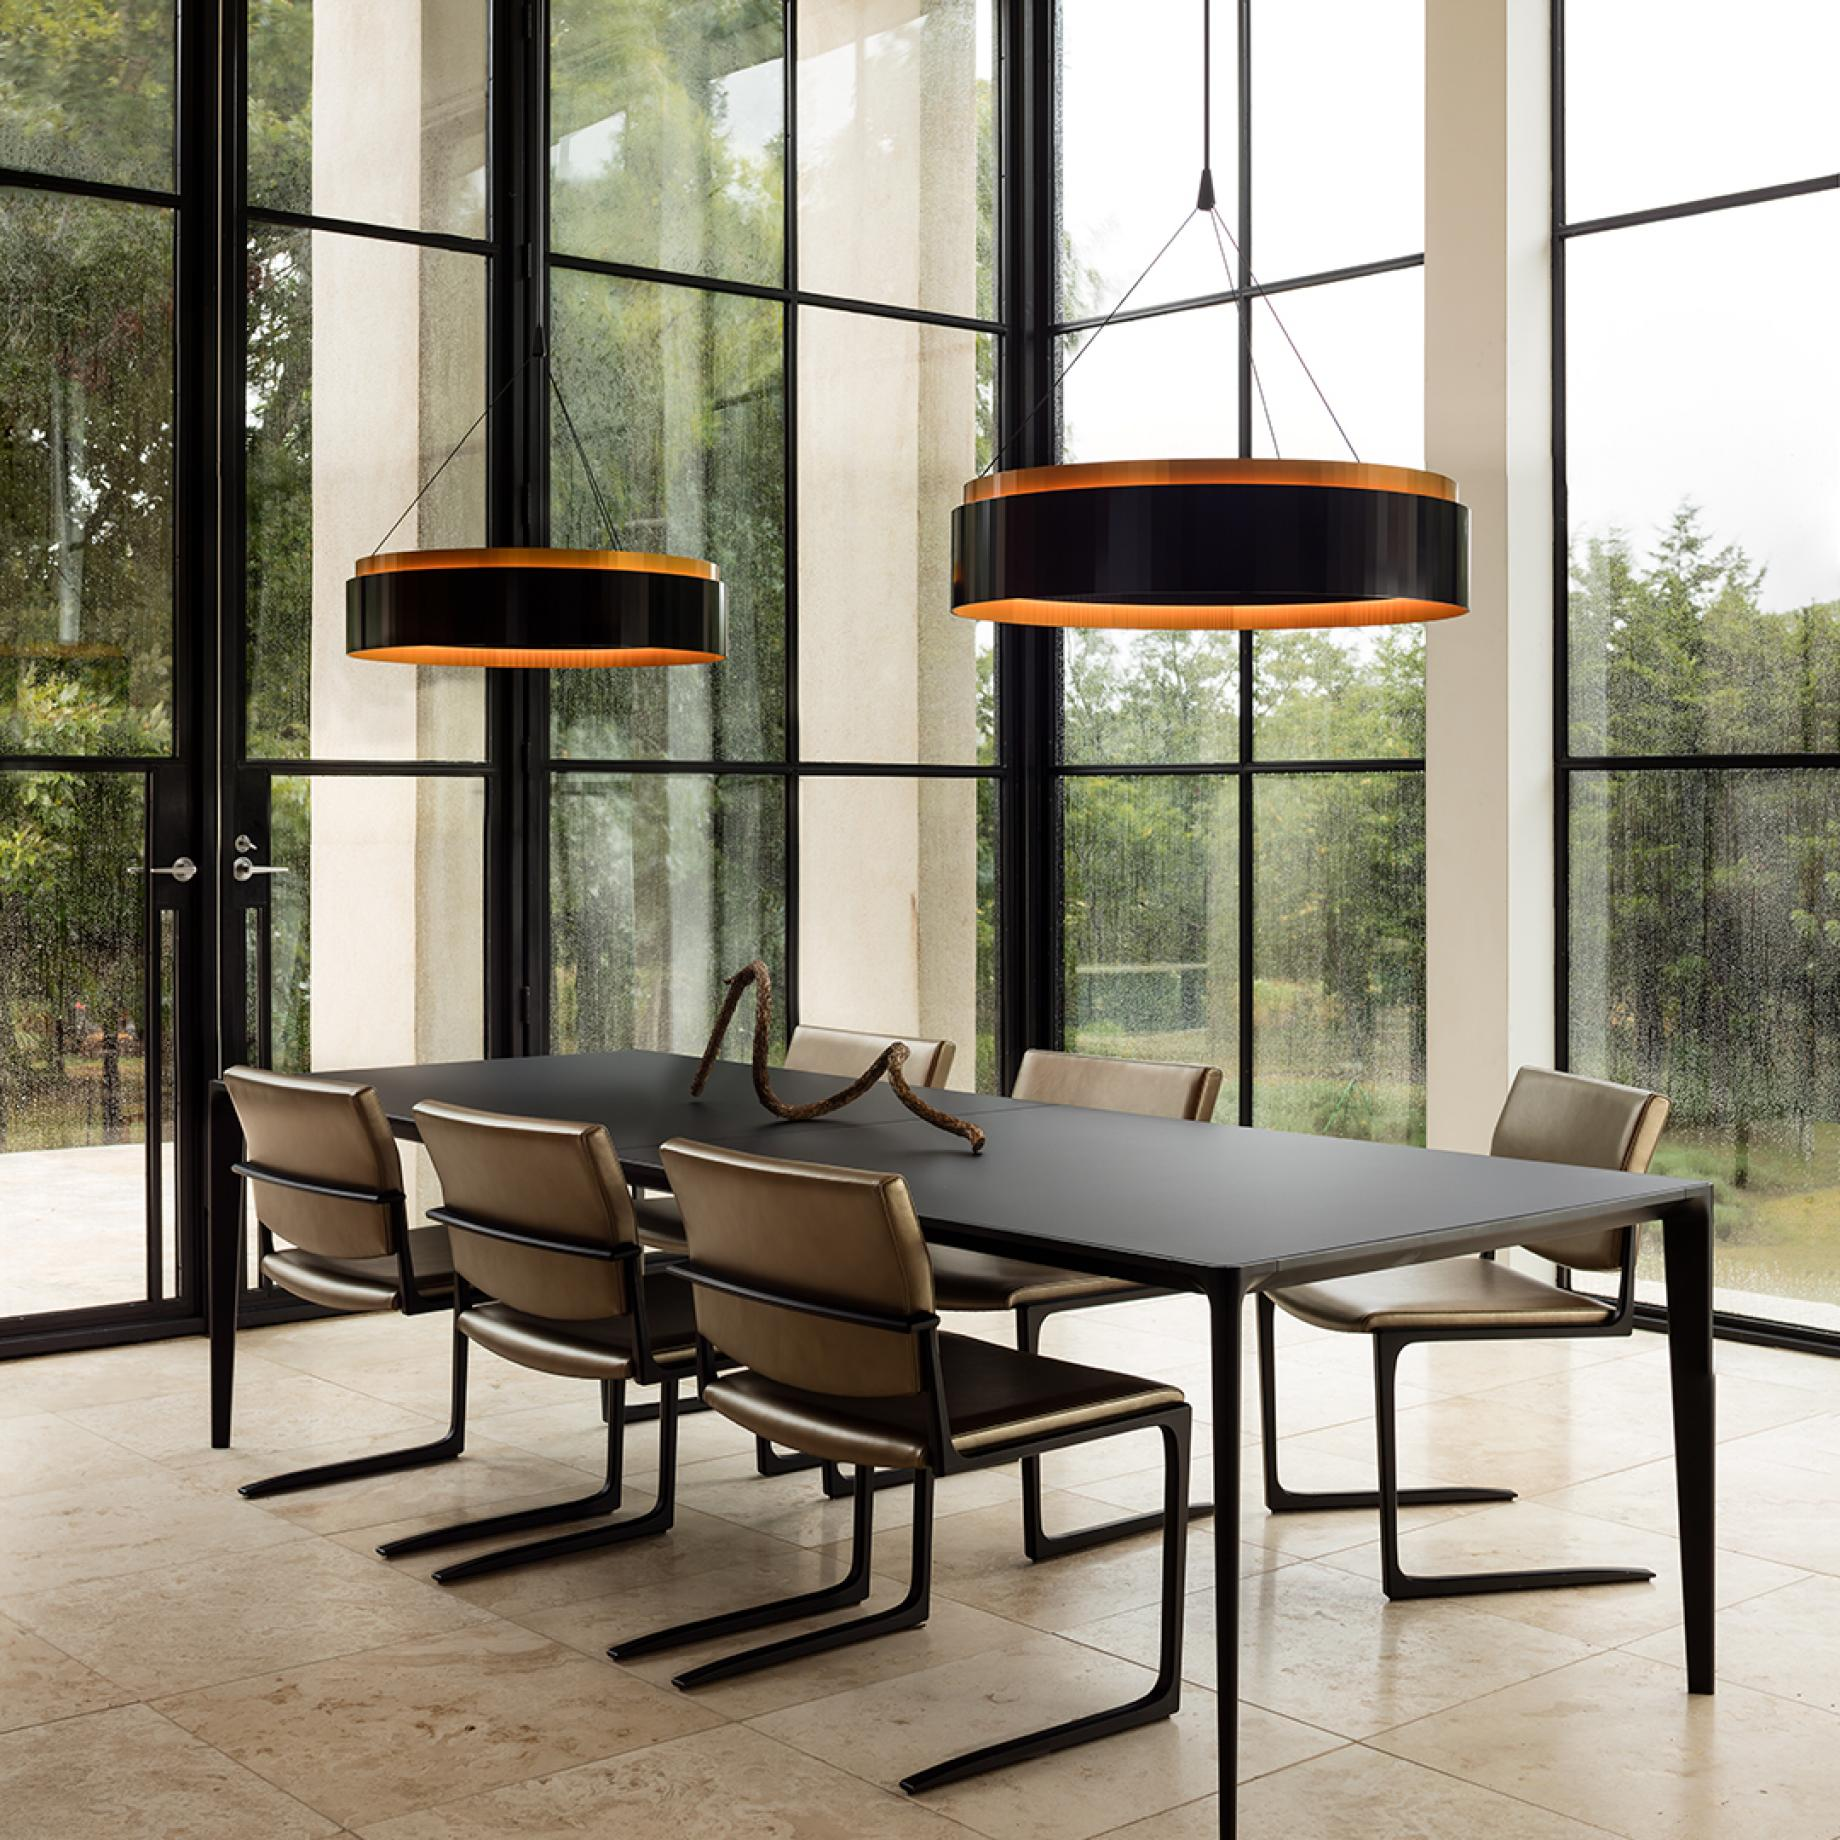 HOLLY HUNT Studio Shadow Dining Table and Chairs